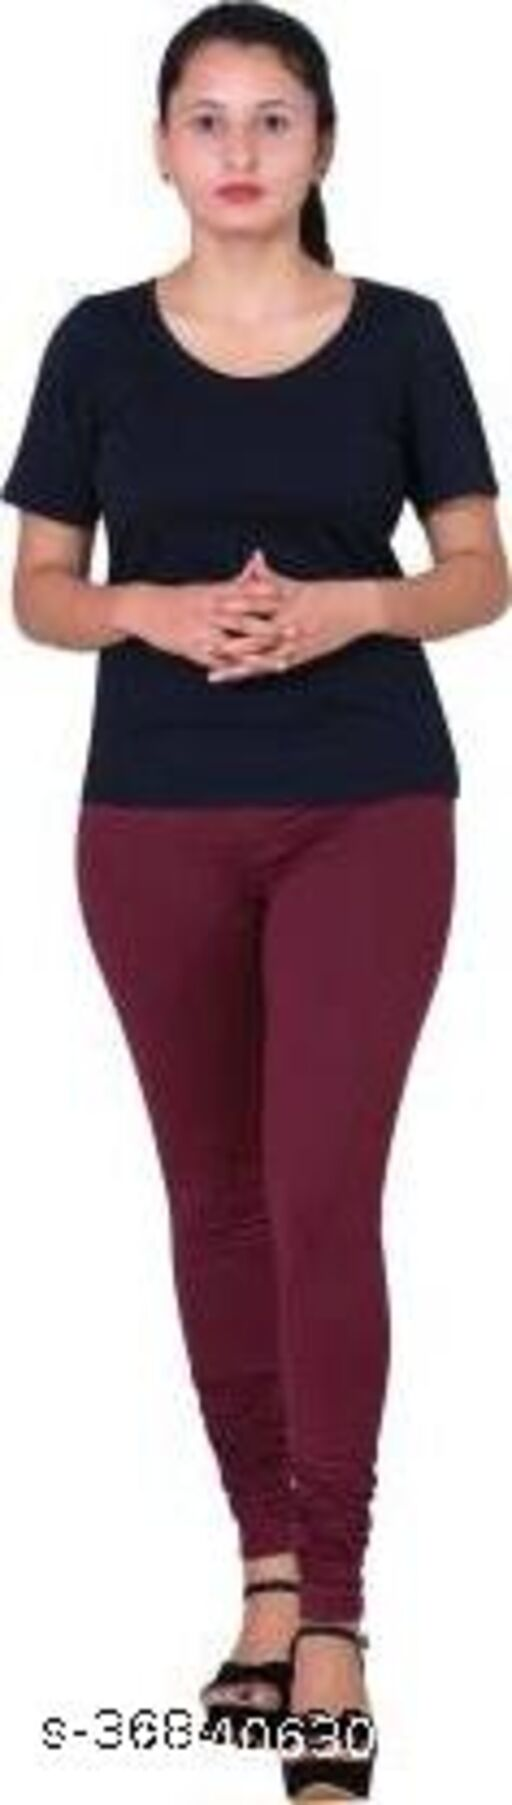 A.S. APPARELS Western Wear Legging Full Lenth Free Size For Women And Girls